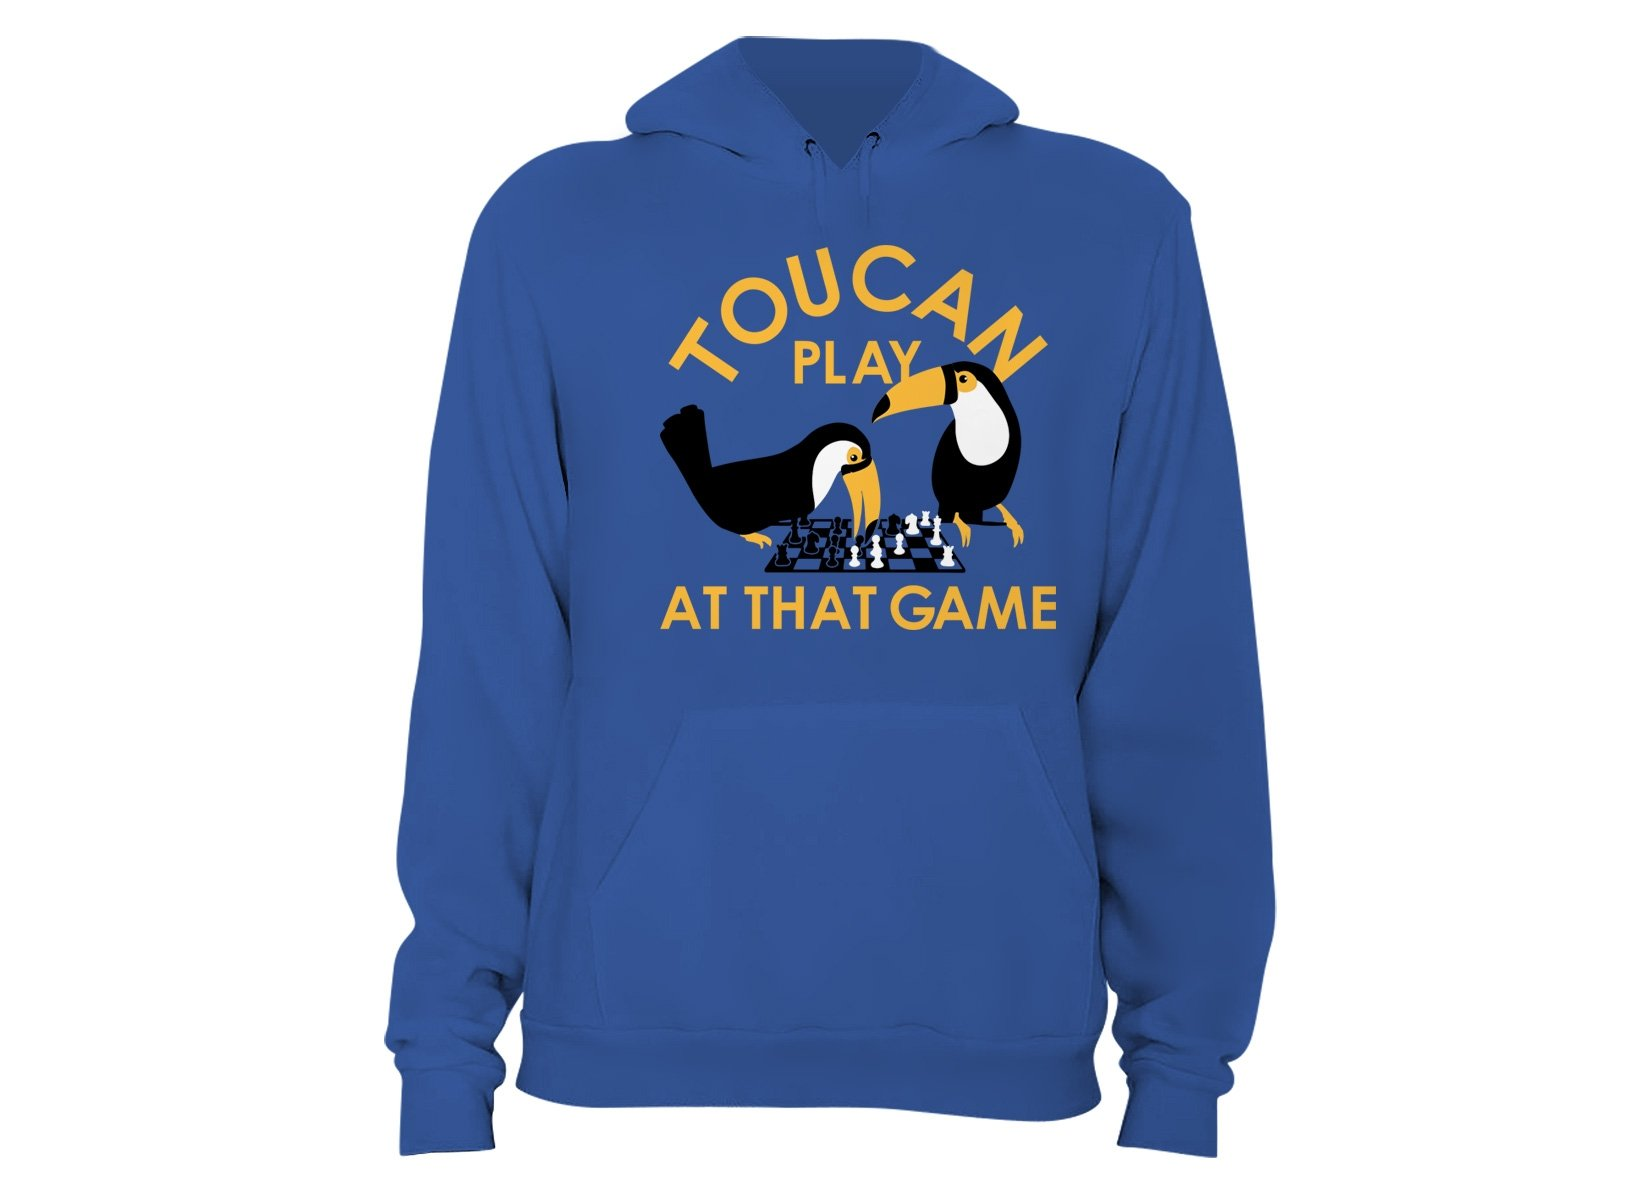 Toucan Play At That Game on Hoodie